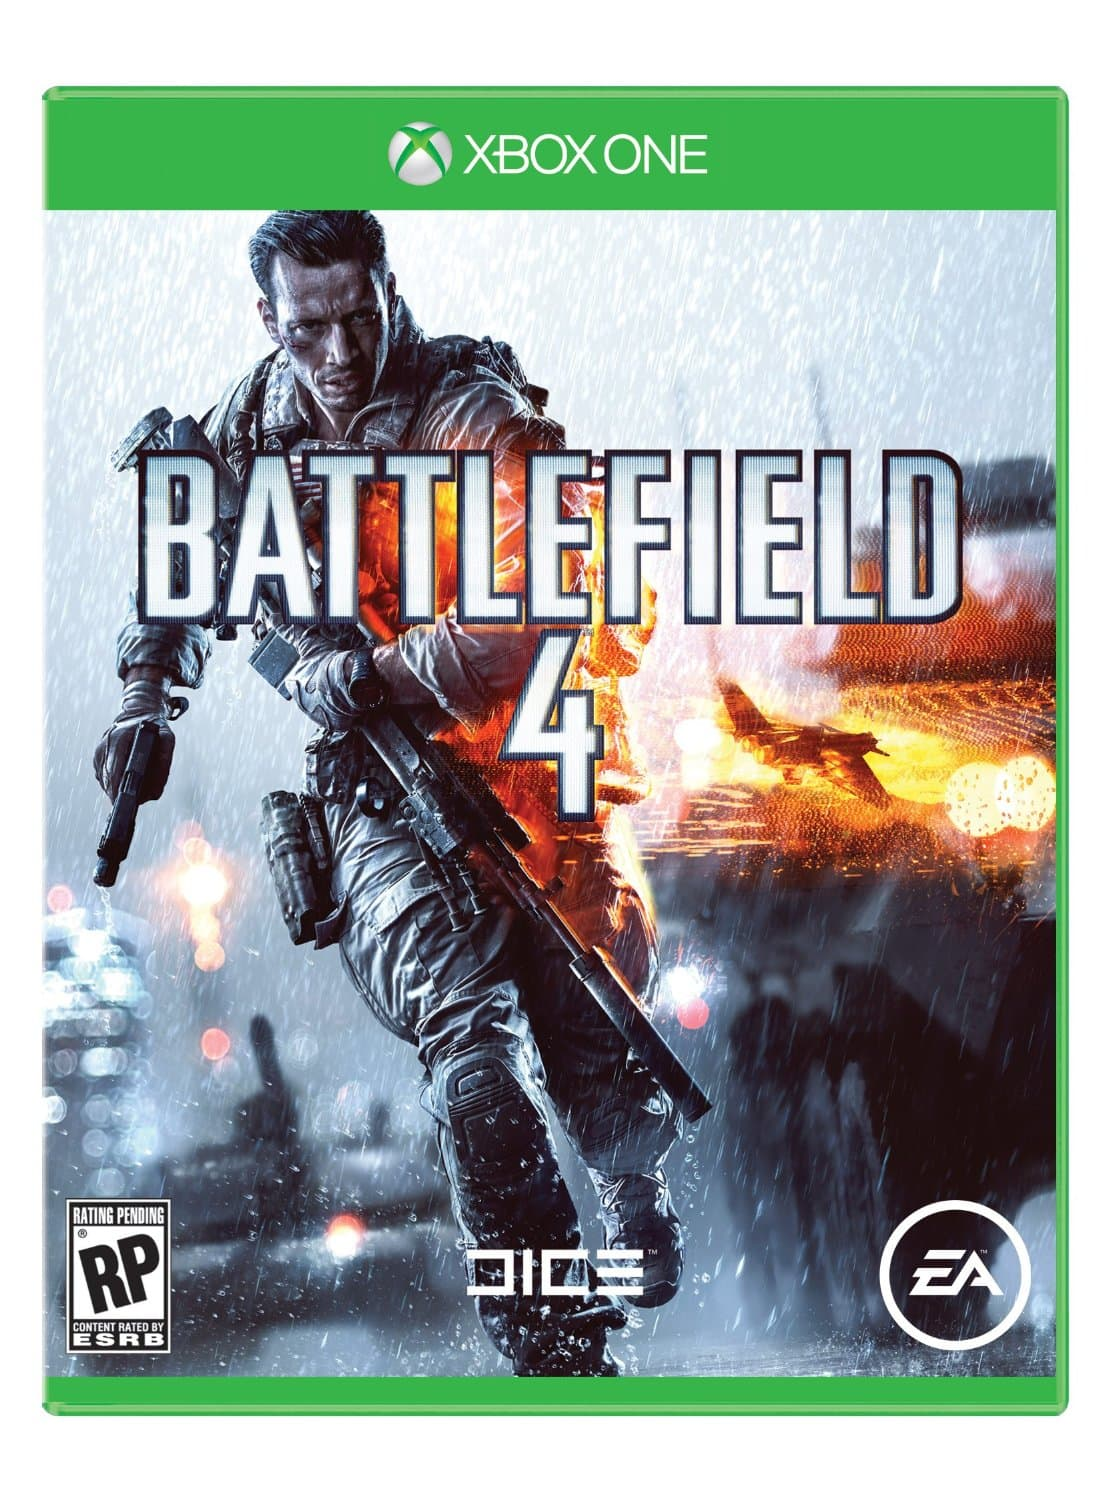 Battlefield 4 XBOX ONE $4.50 with xbox live gold Digital Download